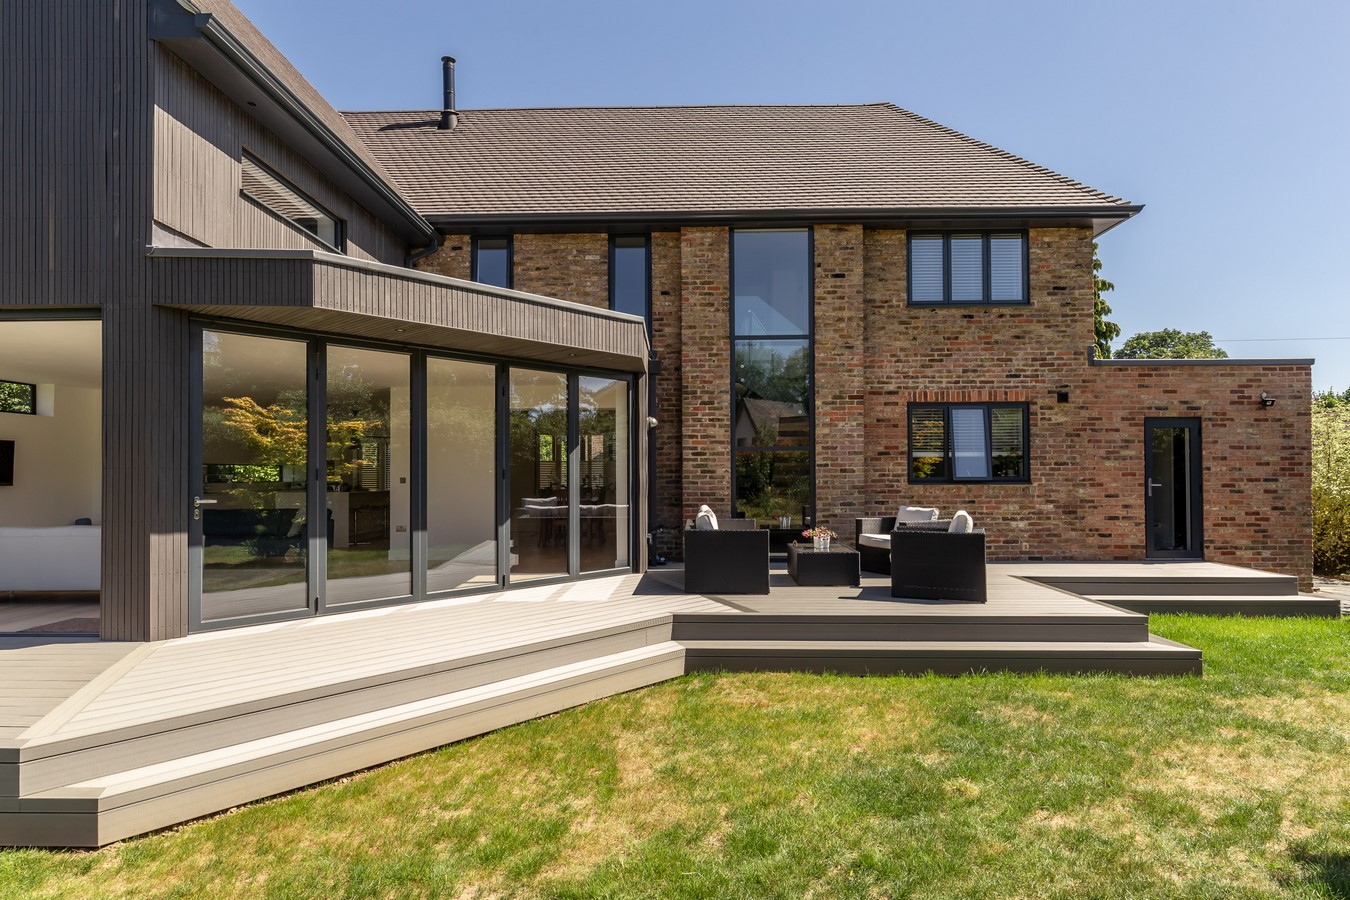 5151 Stoke Close, Surrey by Life Size Architecture: Sheet 3